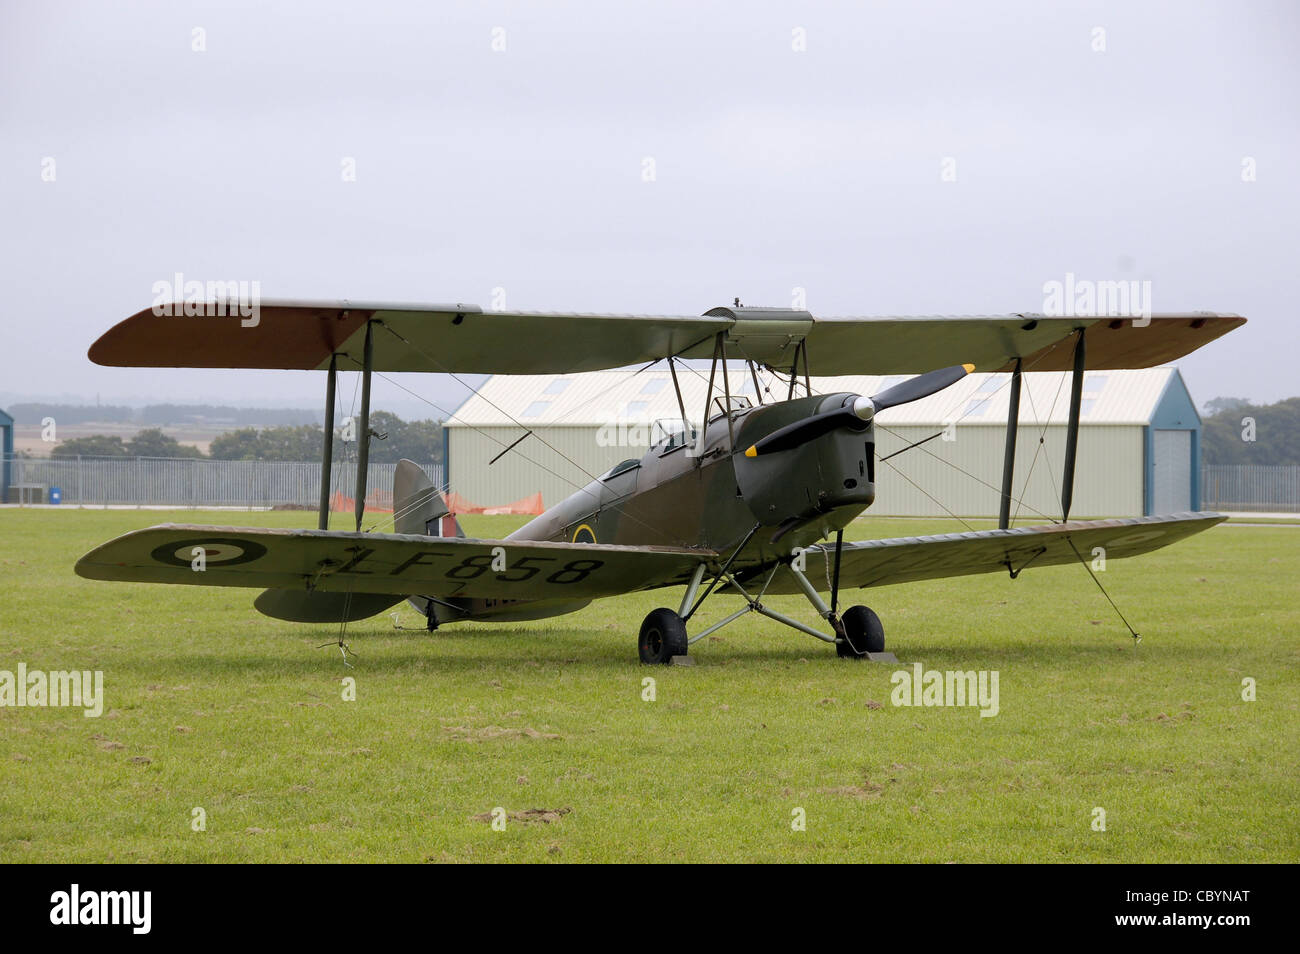 de Havilland DH-82B Queen Bee (LF858, G-BLUZ) at the 2008 Open Day, Kemble Airport, Gloucestershire, England. - Stock Image